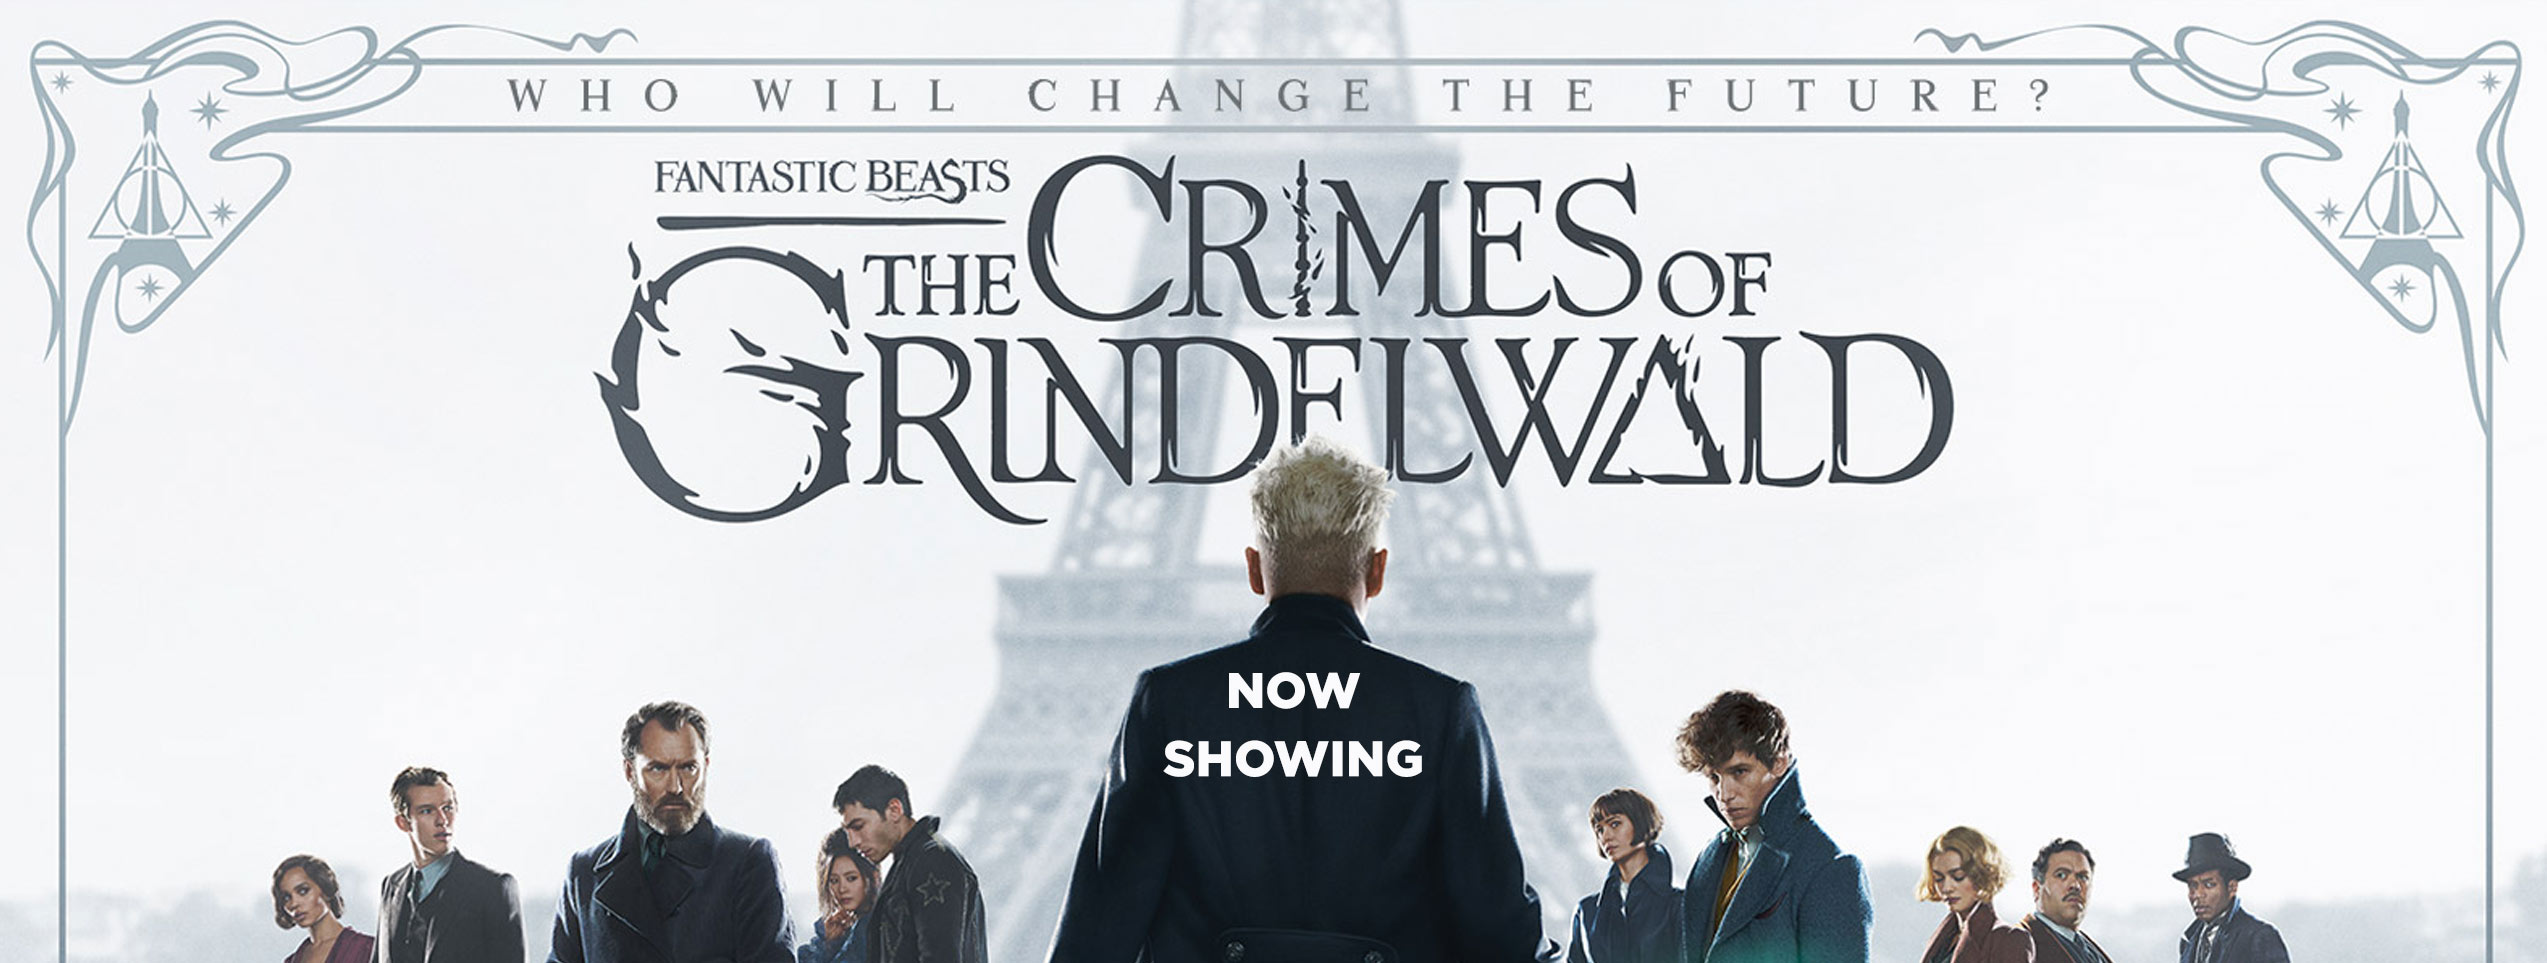 Fantastic Beasts: The Crimes of Grindelwald (2D) (PG13) (Eng)